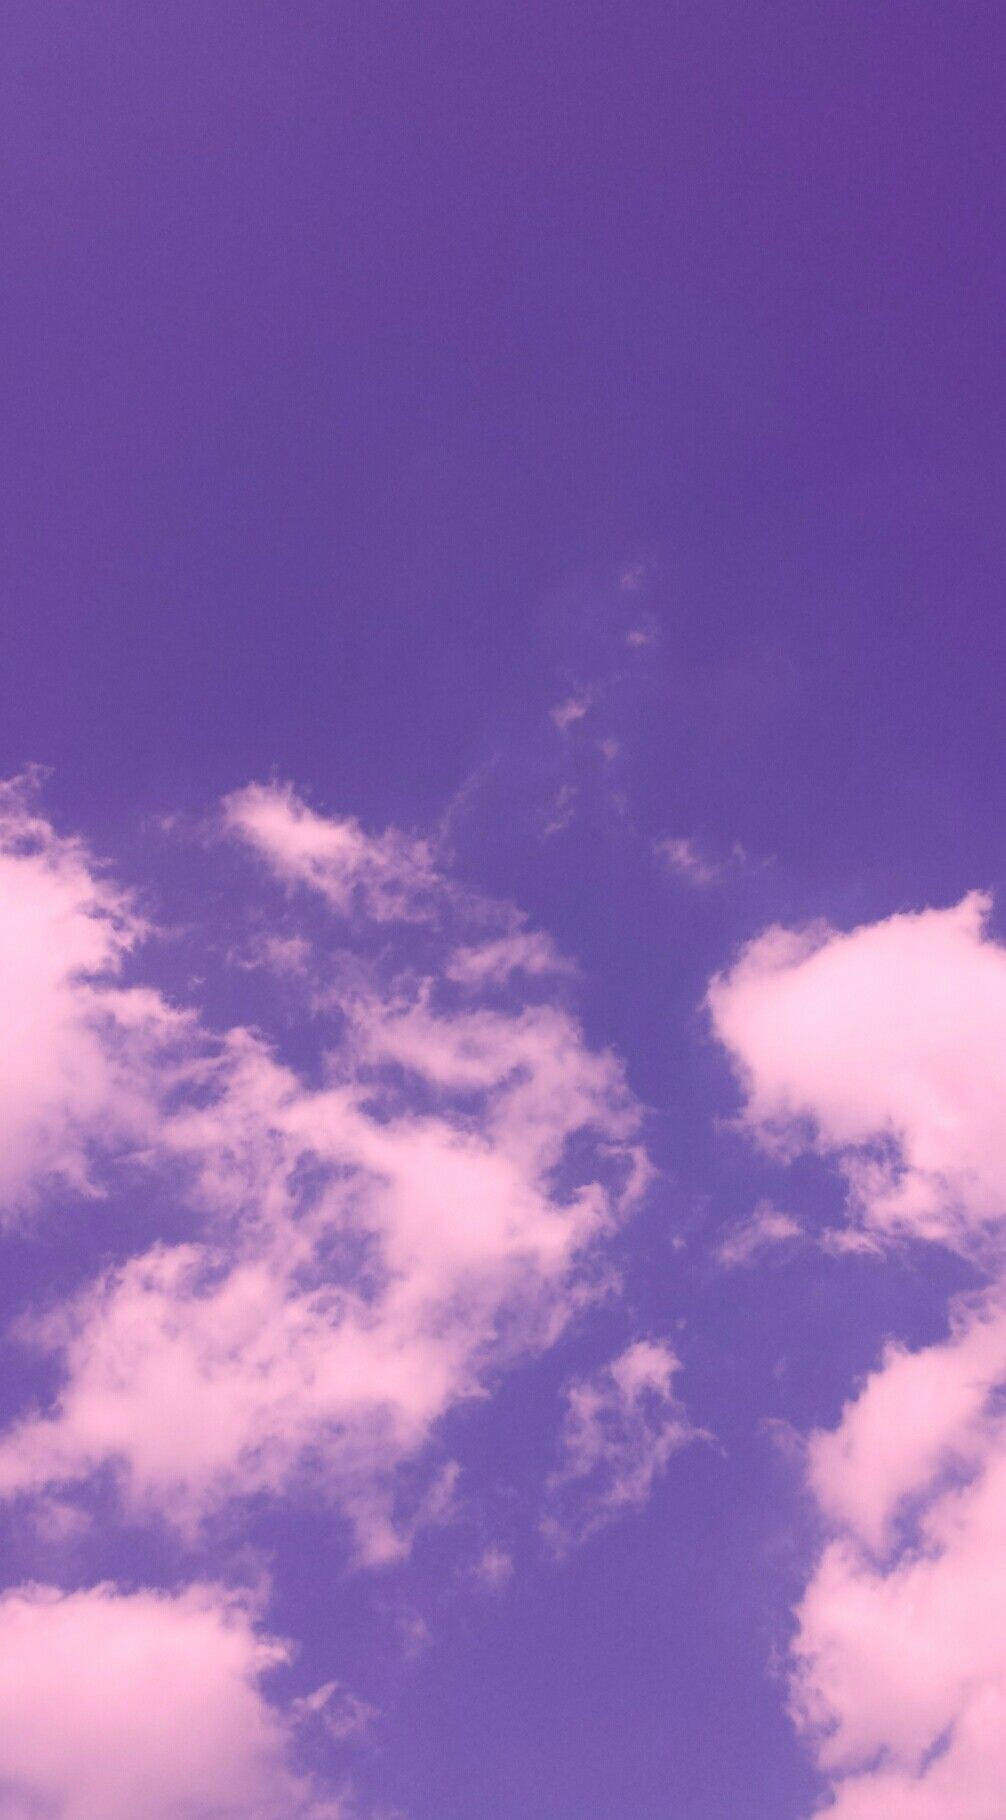 1006x1820 Grunge, hipster, cloud, purple iPhone wallpaper | Grunge/Aesthetic ...